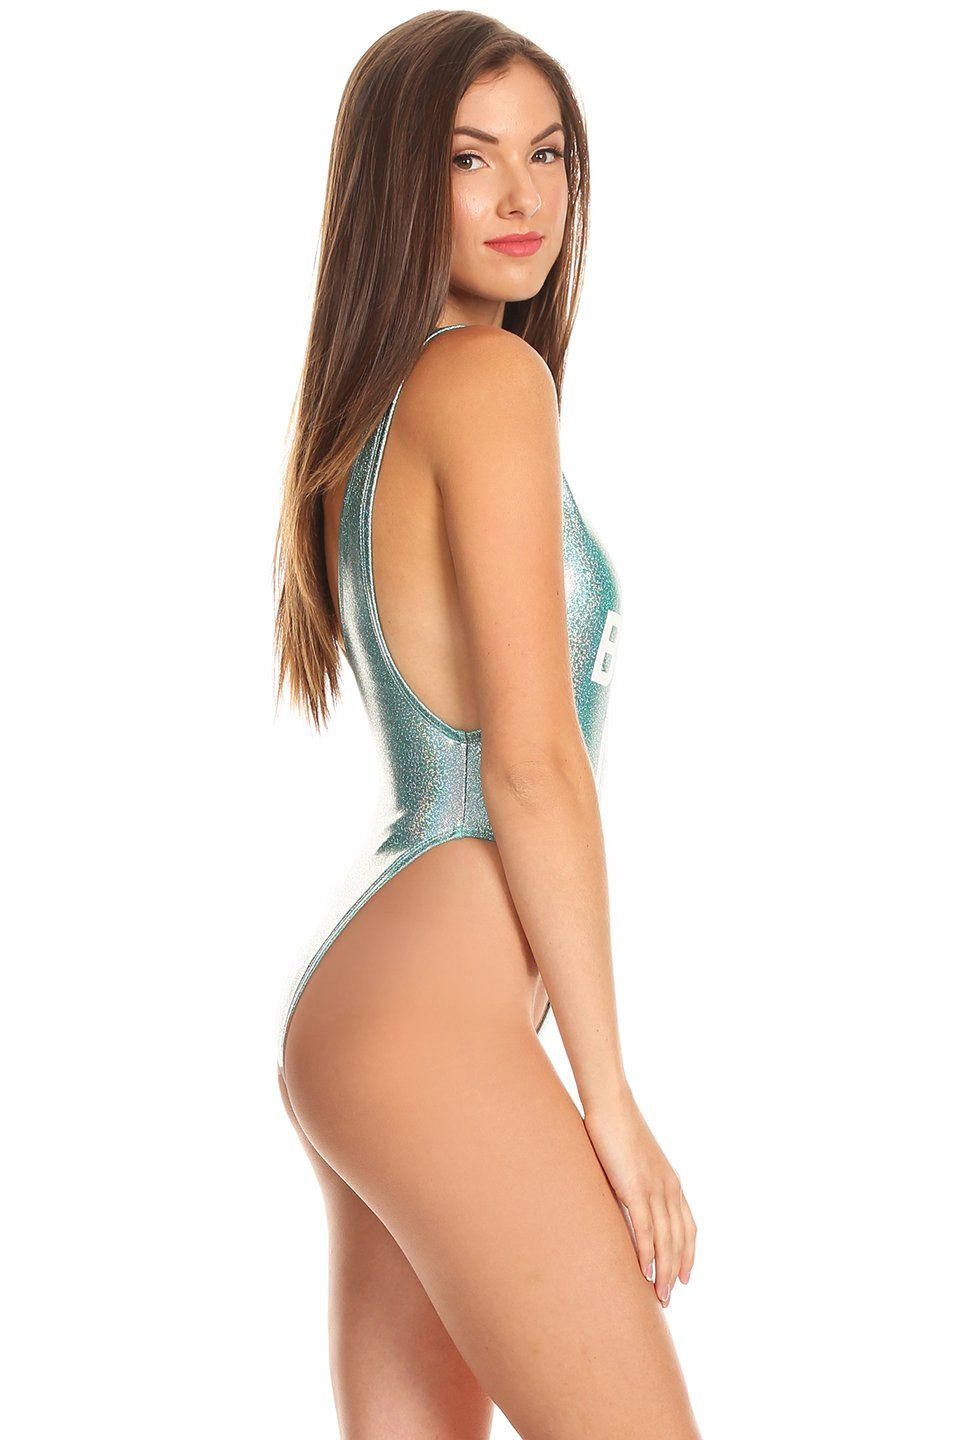 Shiny Blue BRIDES MAID Scoop Neck High Cut One Piece Side - Dippin  Daisy s  Swimwear 39deef46e1f8